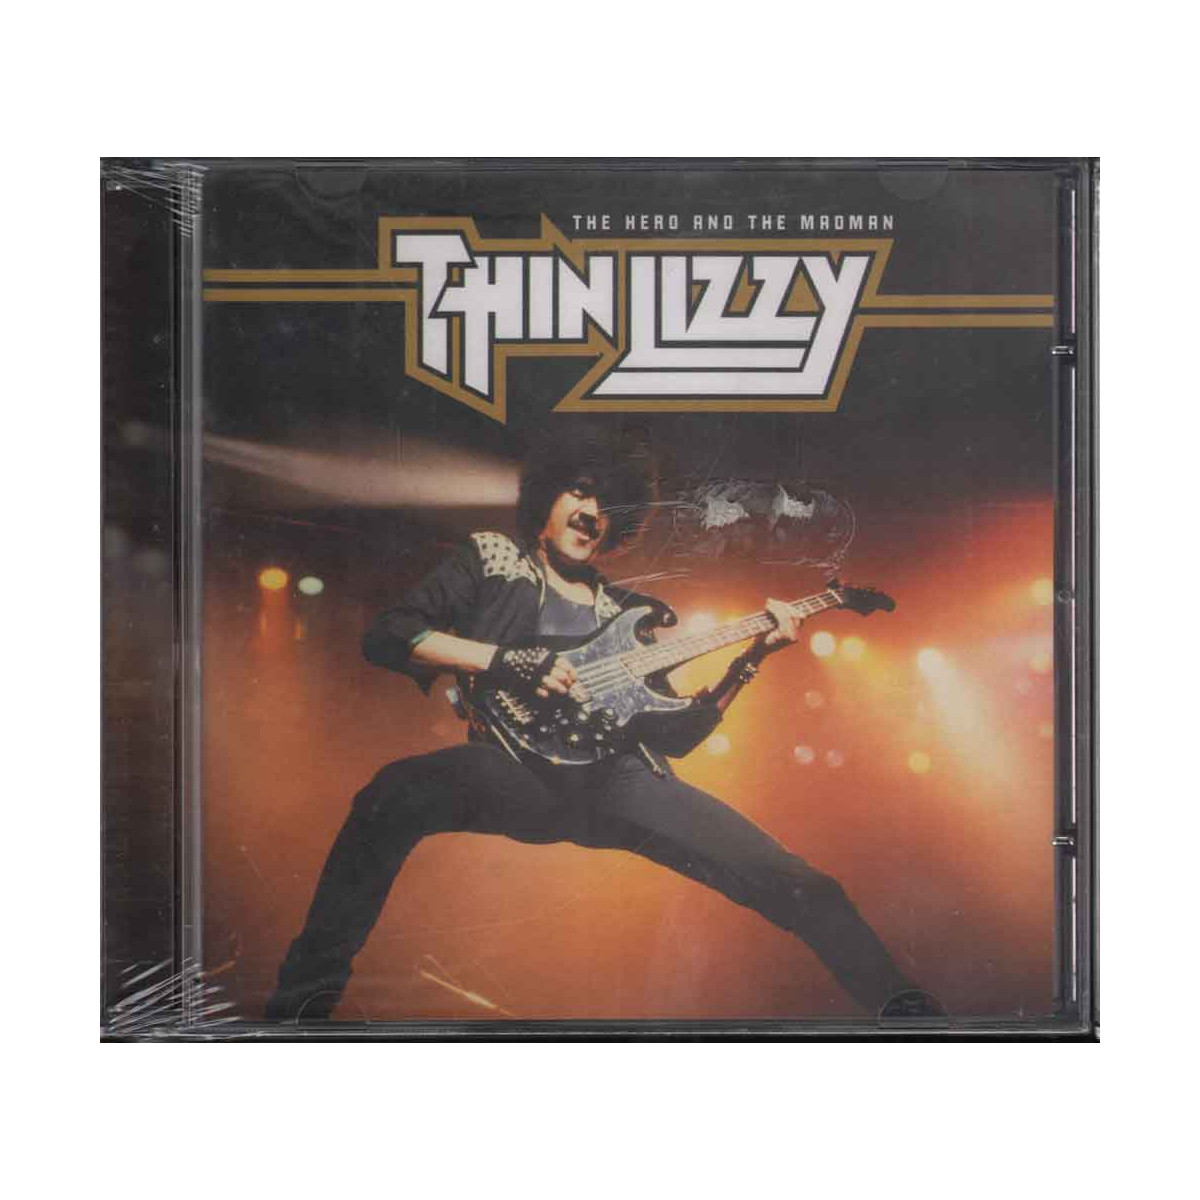 Thin Lizzy  CD The Hero And The Madman Nuovo Sigillato 0731454467728